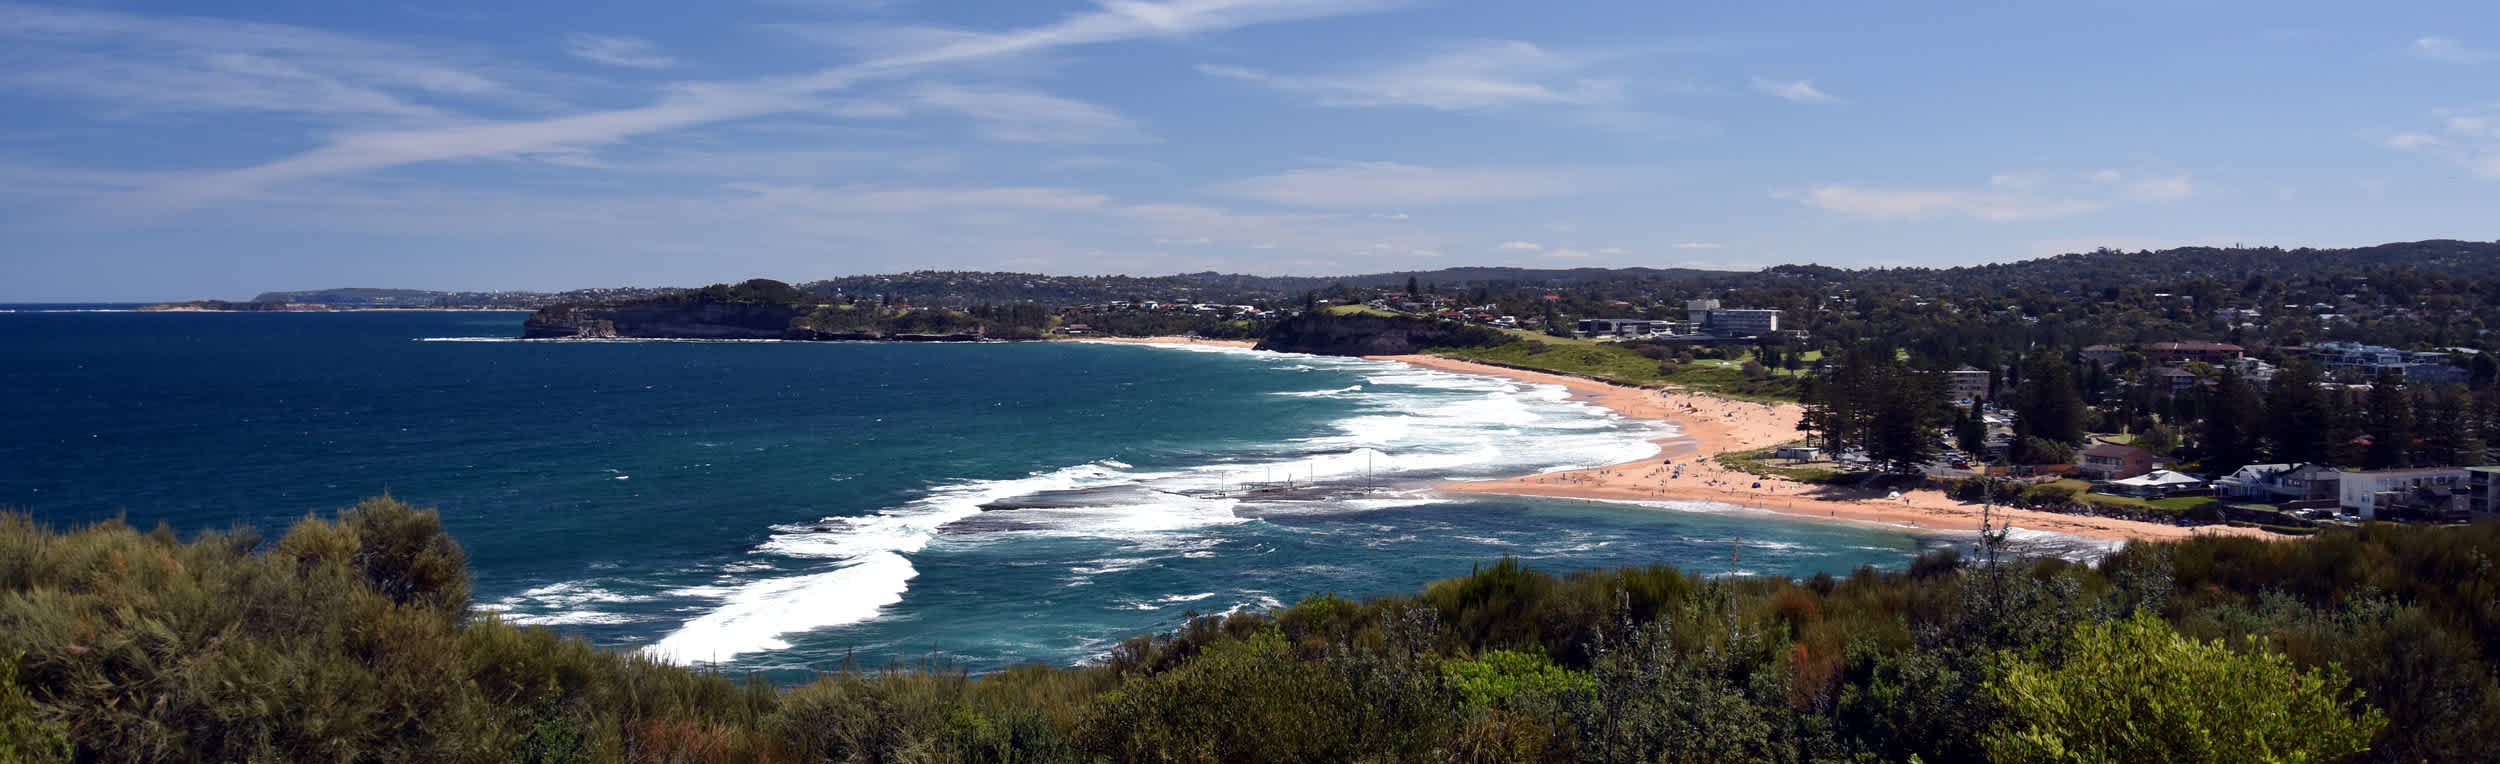 Airbnb Management Northern Beaches